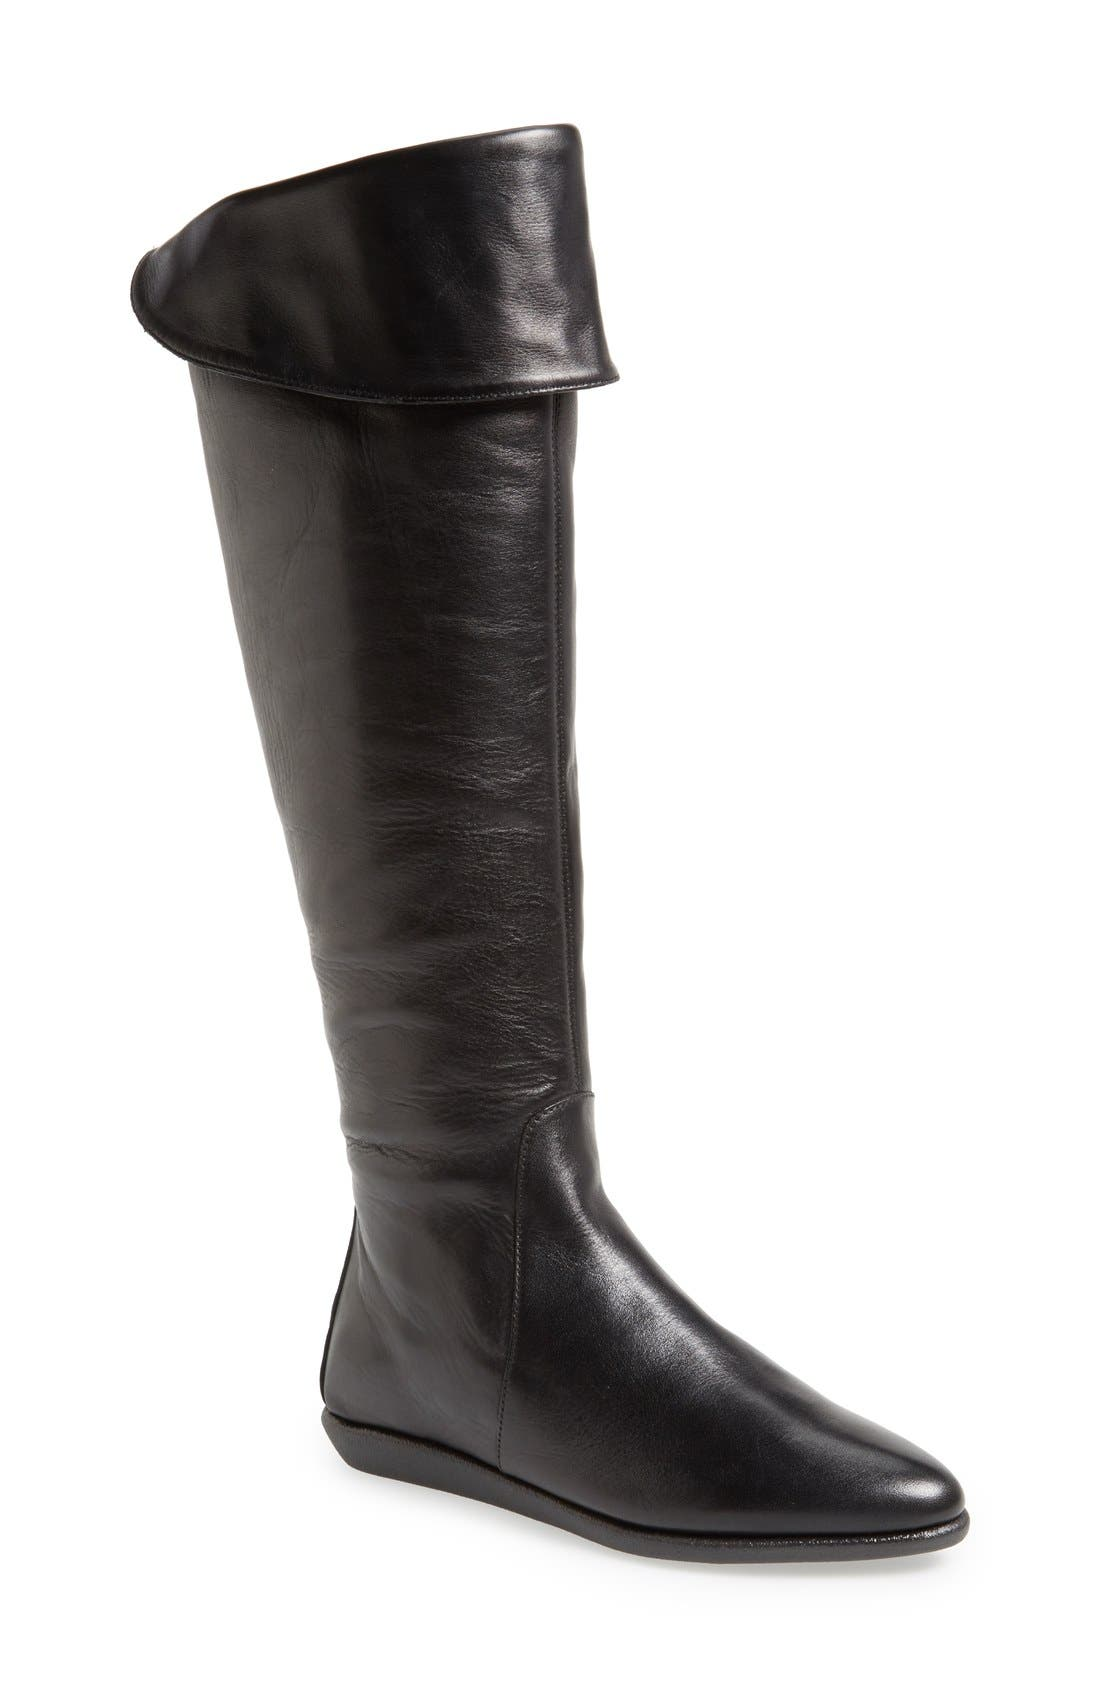 'Senator' Over the Knee Leather Boot,                             Main thumbnail 1, color,                             Black Cashmere